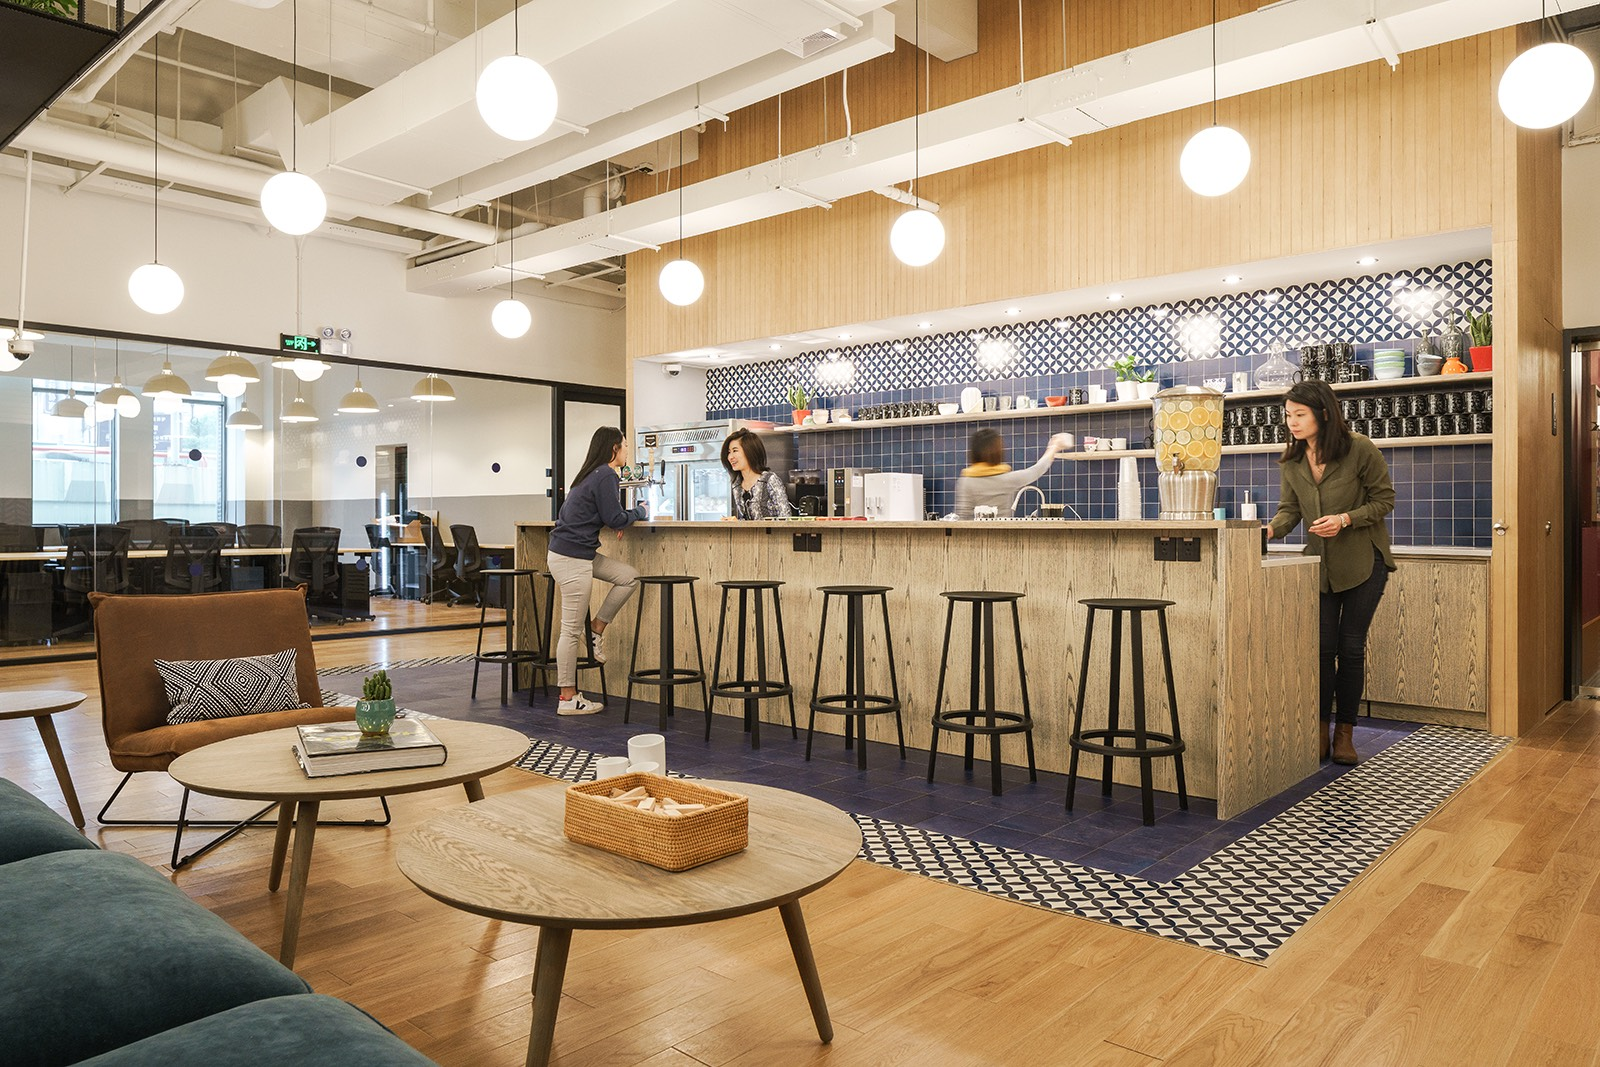 We Appreciate Your Business A Tour of WeWork - Yan...